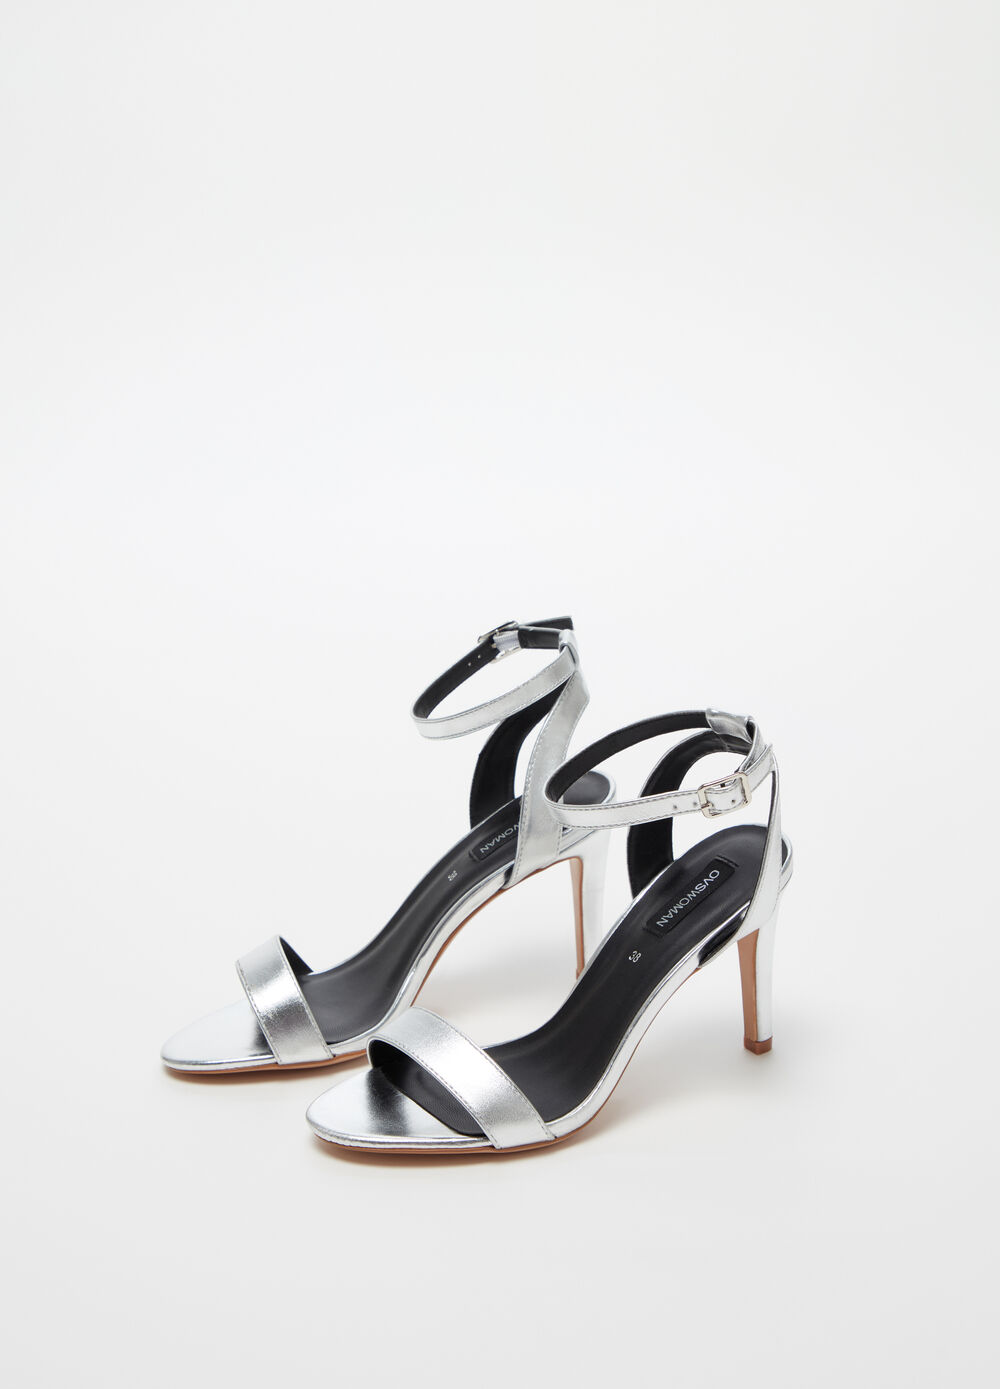 Sandals with high stiletto heels and strap